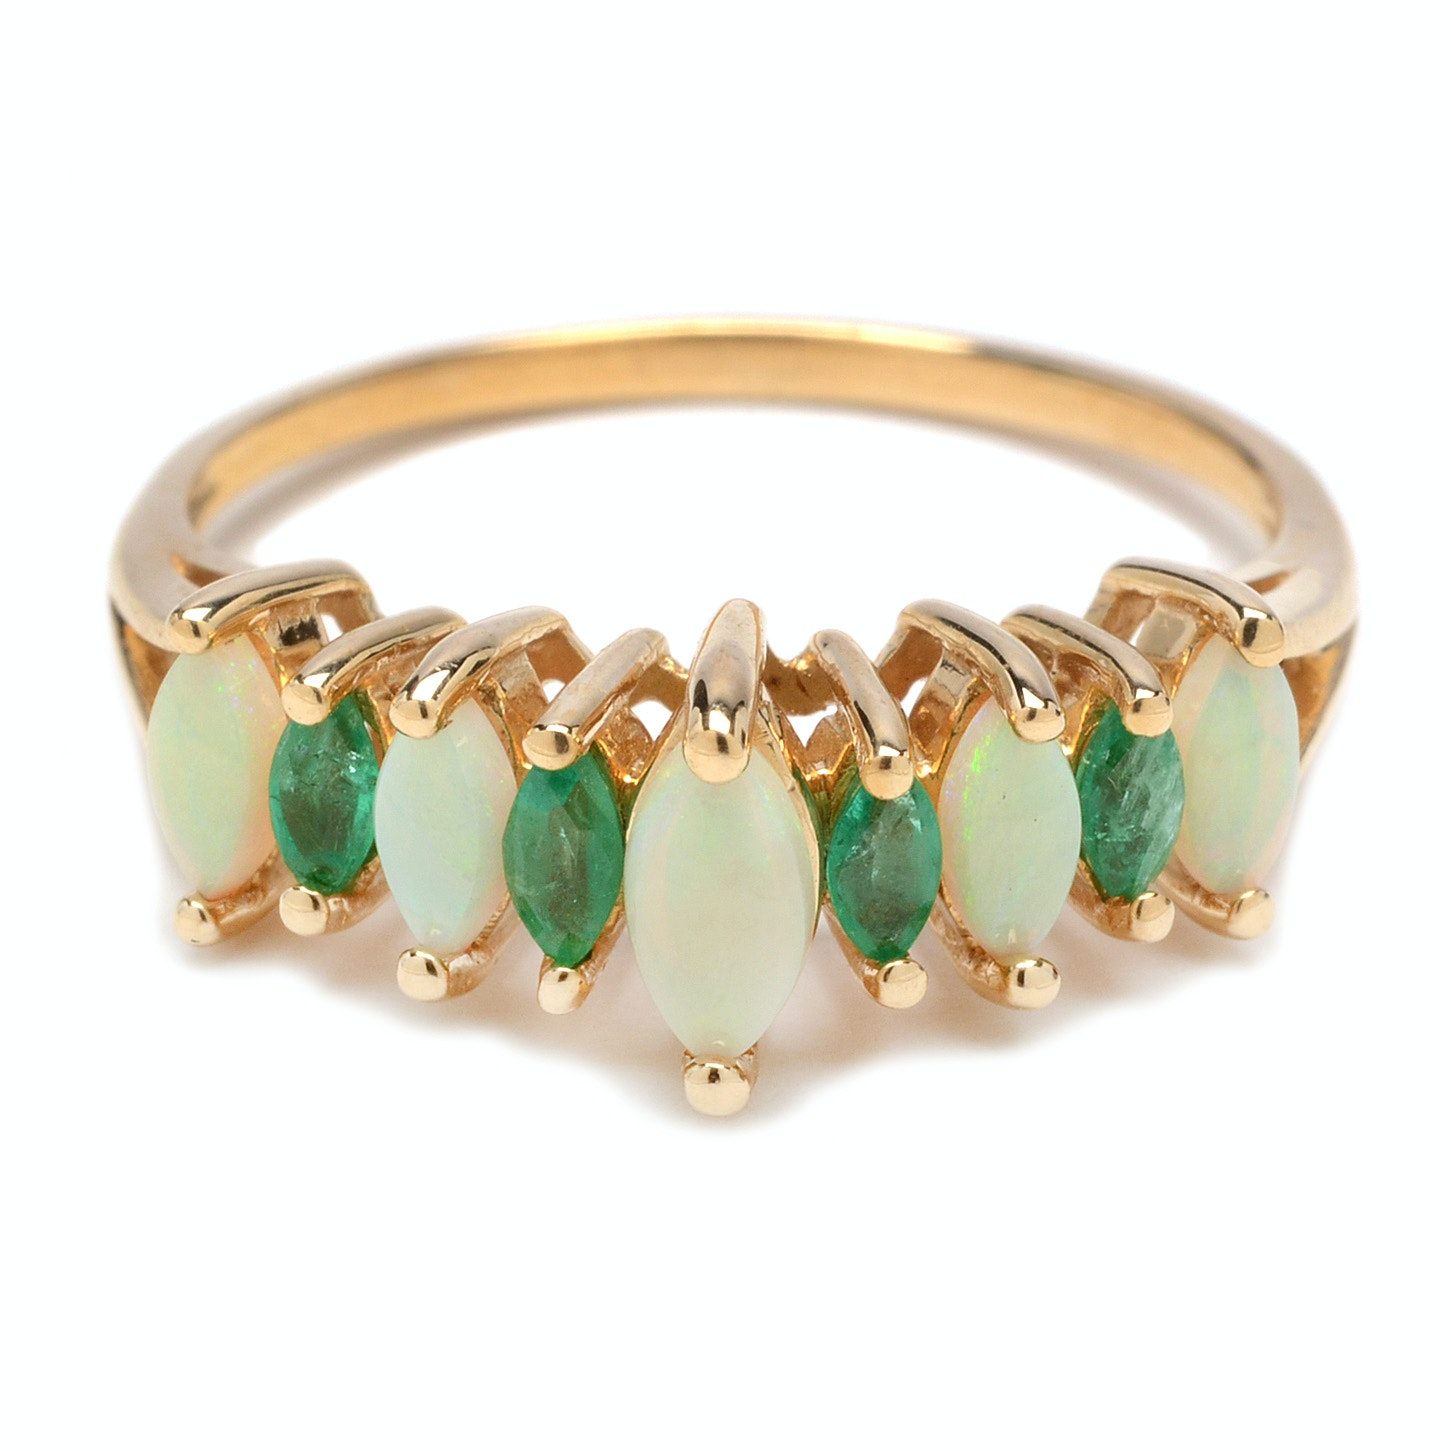 14K Yellow Gold with Opal and Emerald Ring